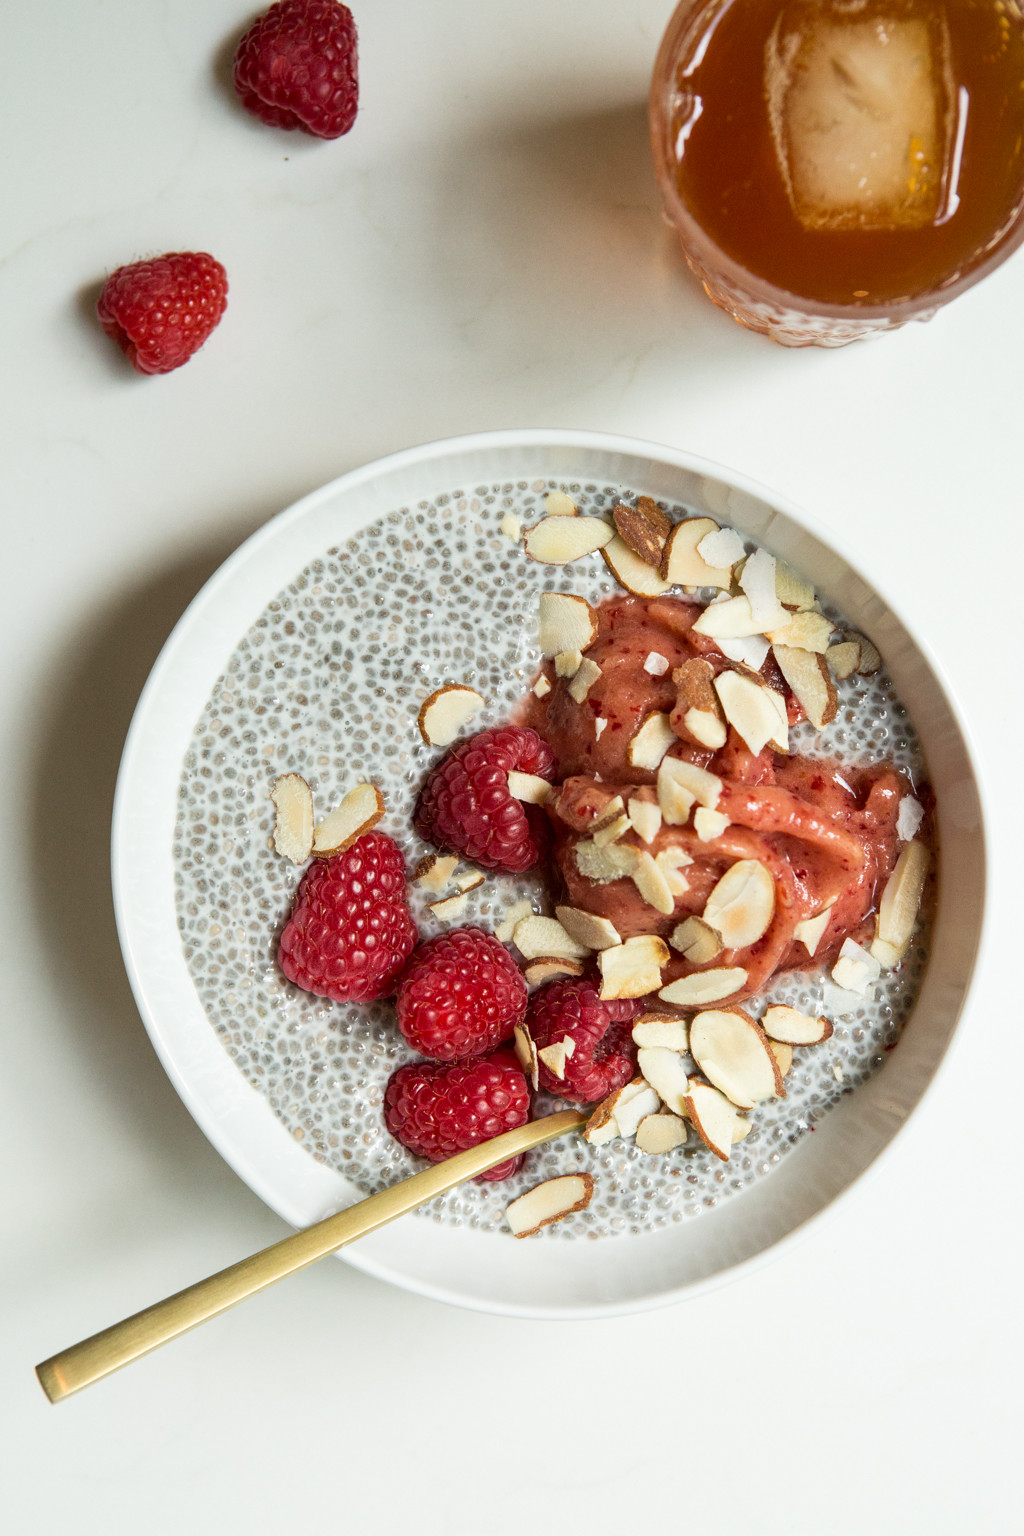 Chia Seed Breakfast Recipes  Basic Chia Seed Pudding — Oh She Glows